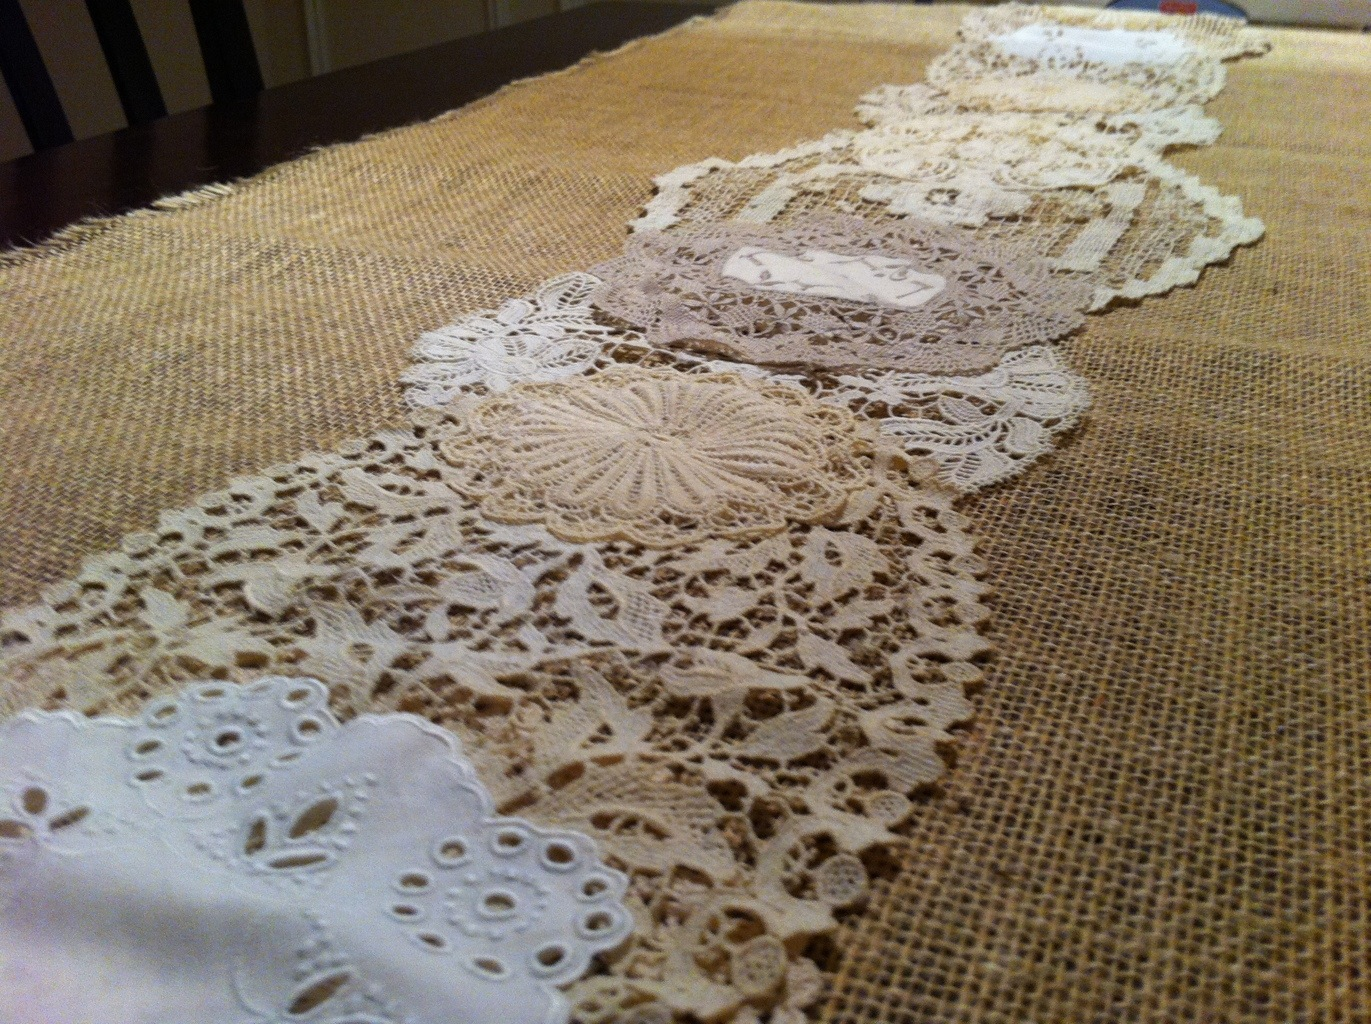 Burlap And Lace Table Runner MotifBrophy